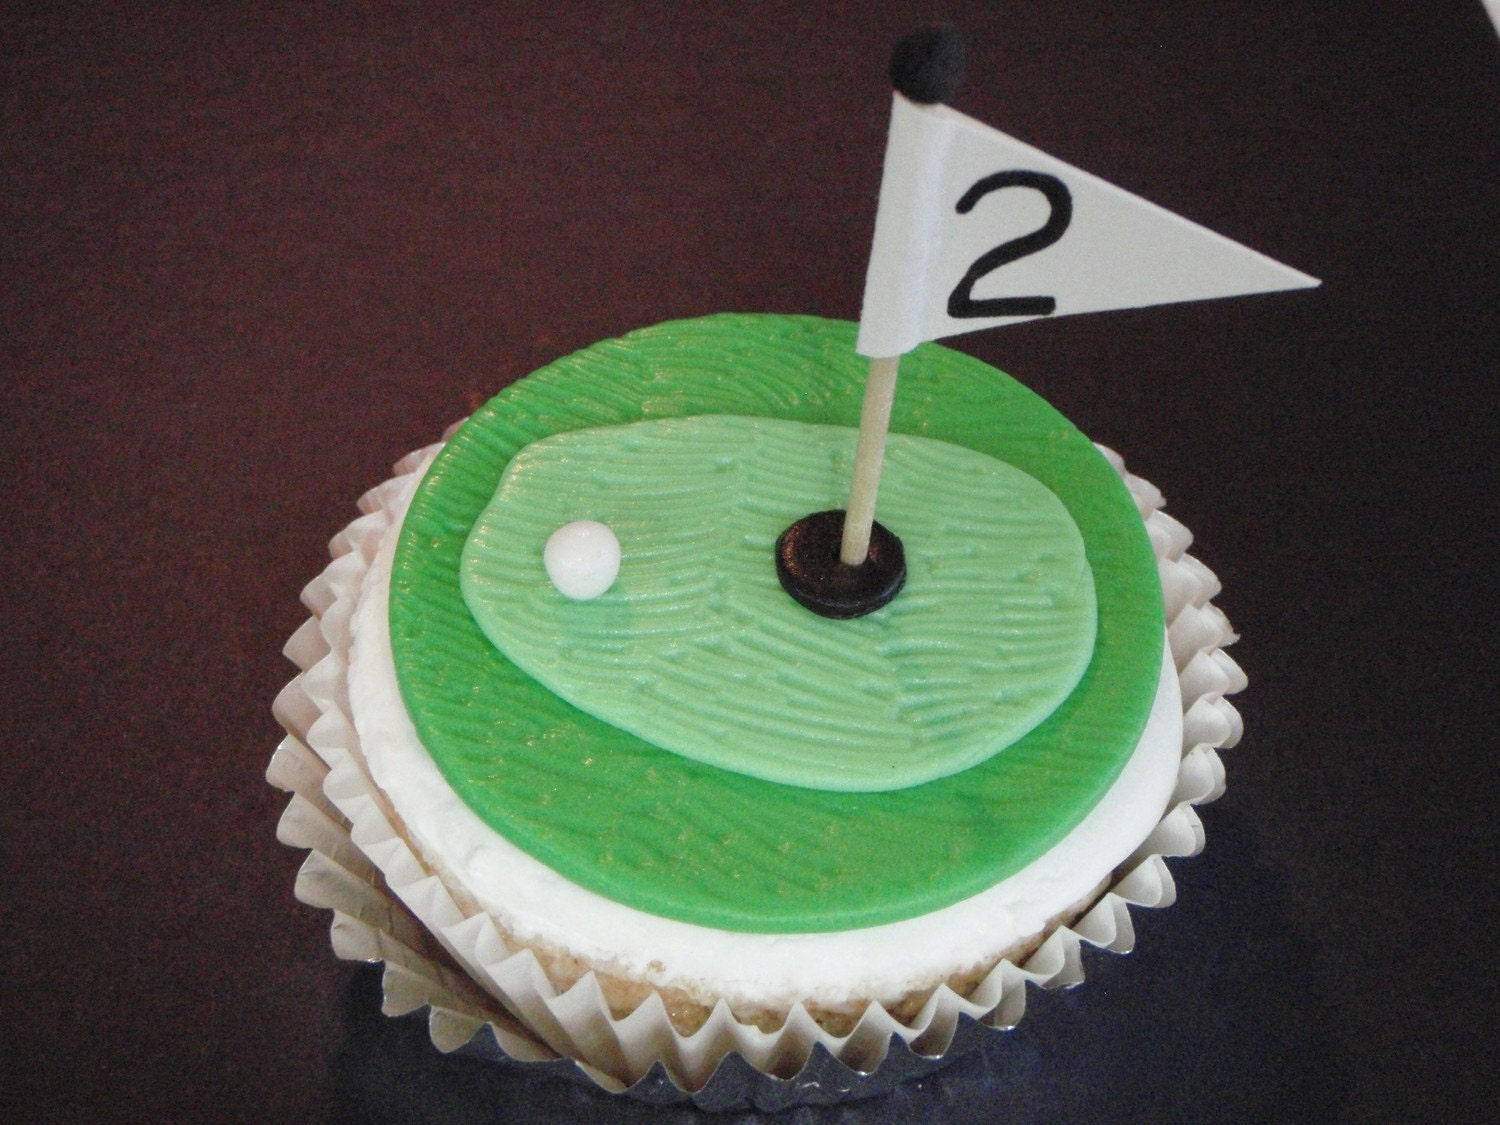 golf hole fondant cupcake topper decoration great for fathers